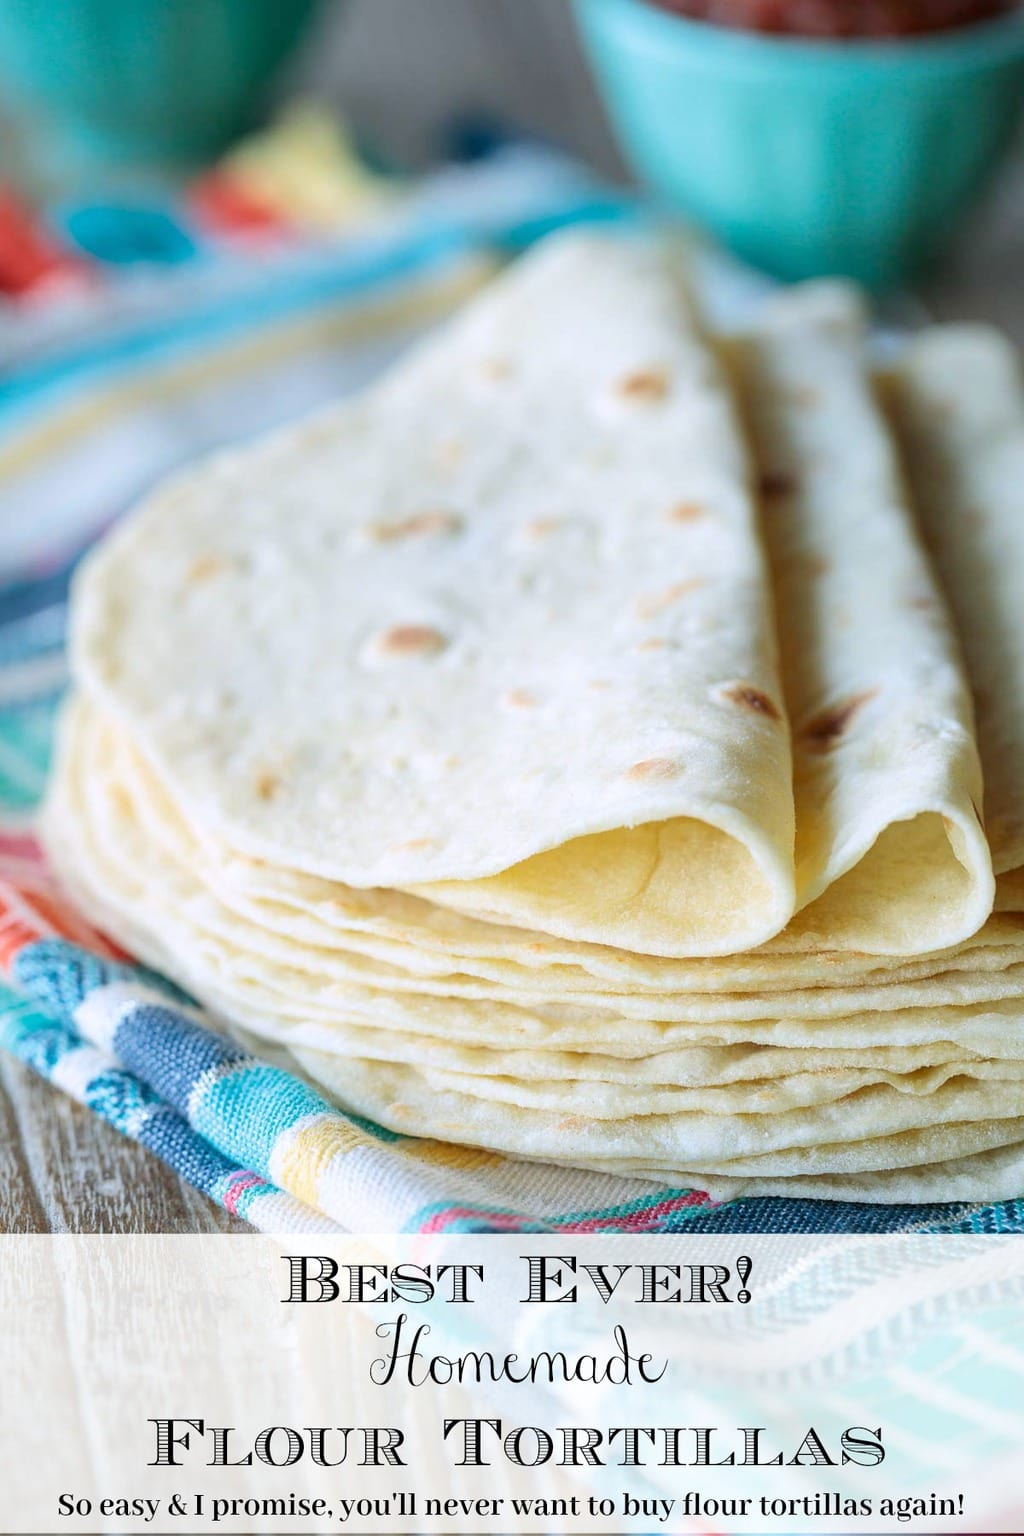 Best Ever Homemade Flour Tortillas, so easy, SO good! The name says it all! Check out over 350 5-star reviews!#bestflourtortillas #flourtortillas #easyflourtortillas #mexicanfood #mexicanrecipes #nomixerflourtortillas